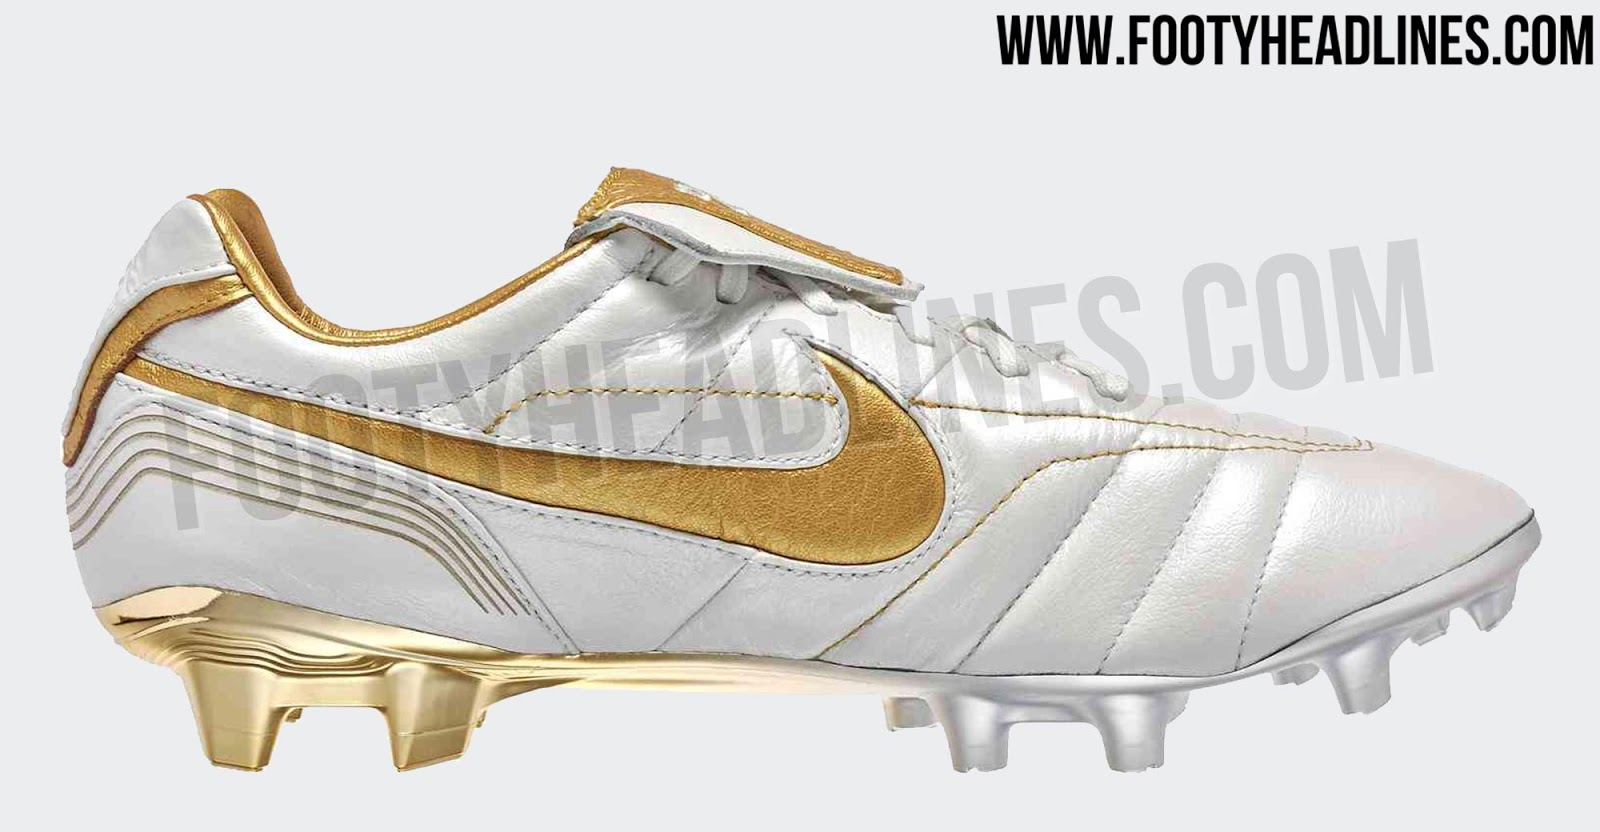 4d92705ed A stunning look inspired by the white and golden Nike Air Legend 2005  Ronaldinho signature boots, the 2018 Nike Tiempo R10 football boots feature  a white ...